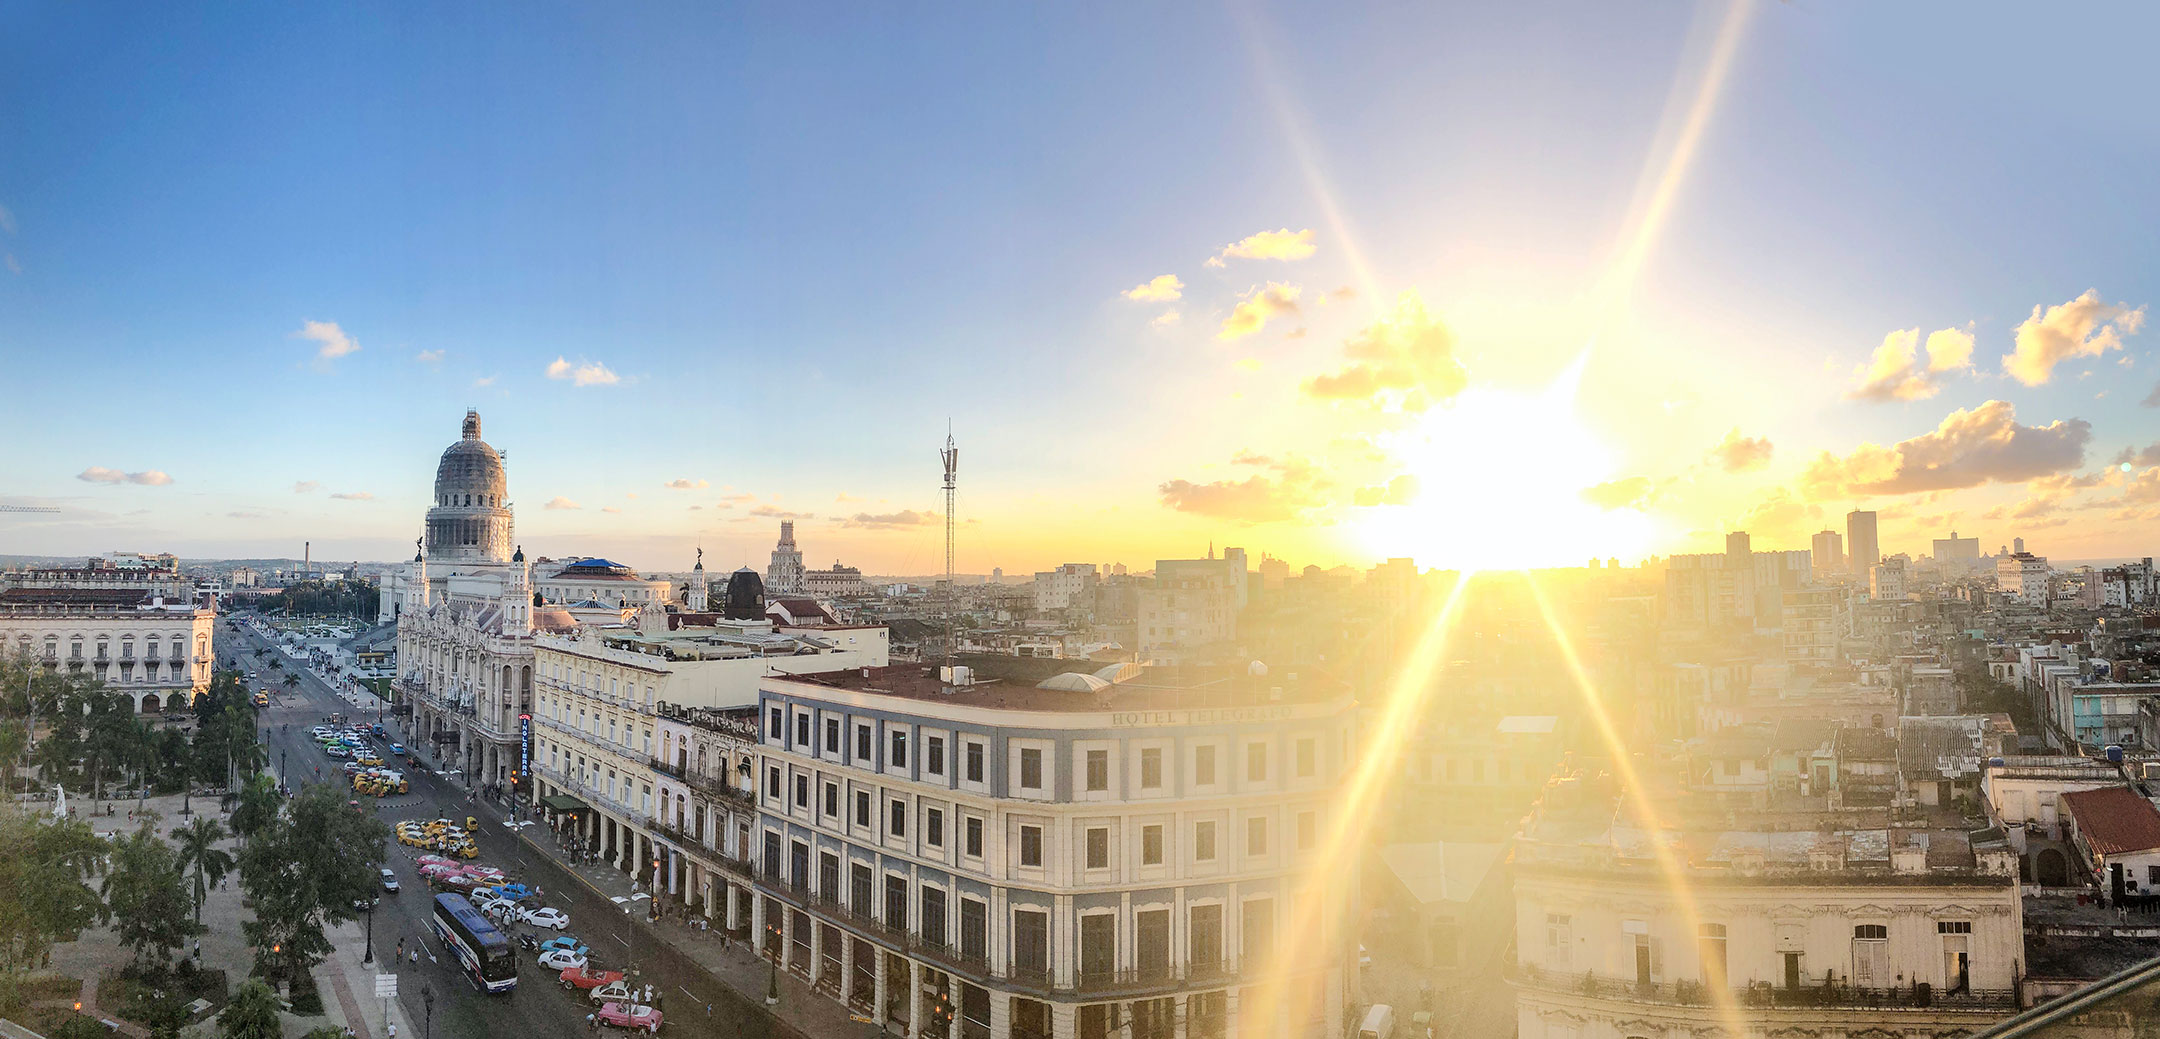 Panoramic of the Havana from the top at sunset on a sunny day with the capitol at the end